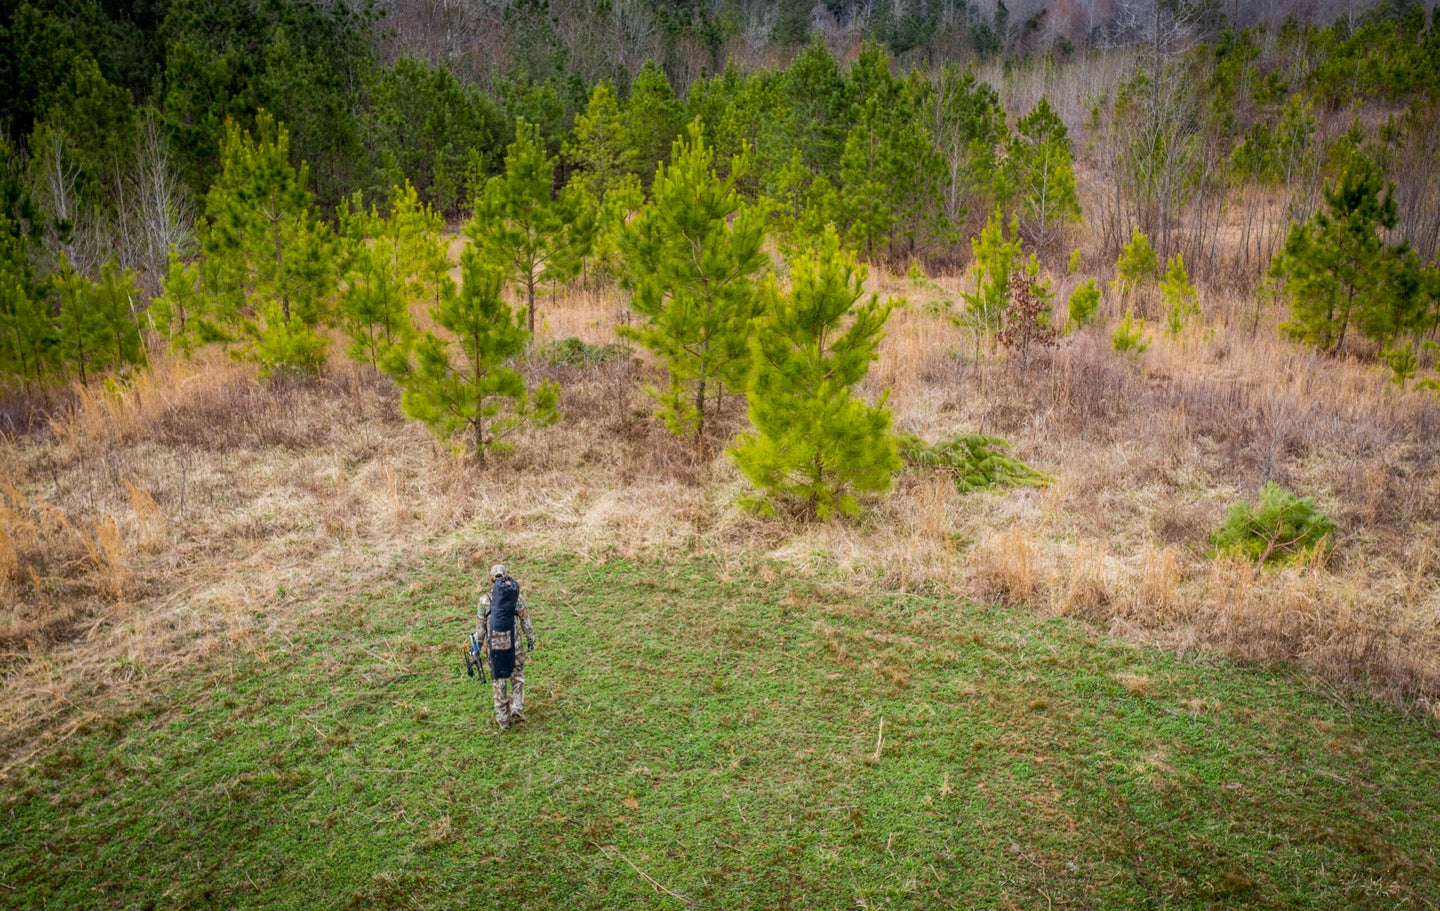 Looking for hunting land? Pick a property that's worth the investment.